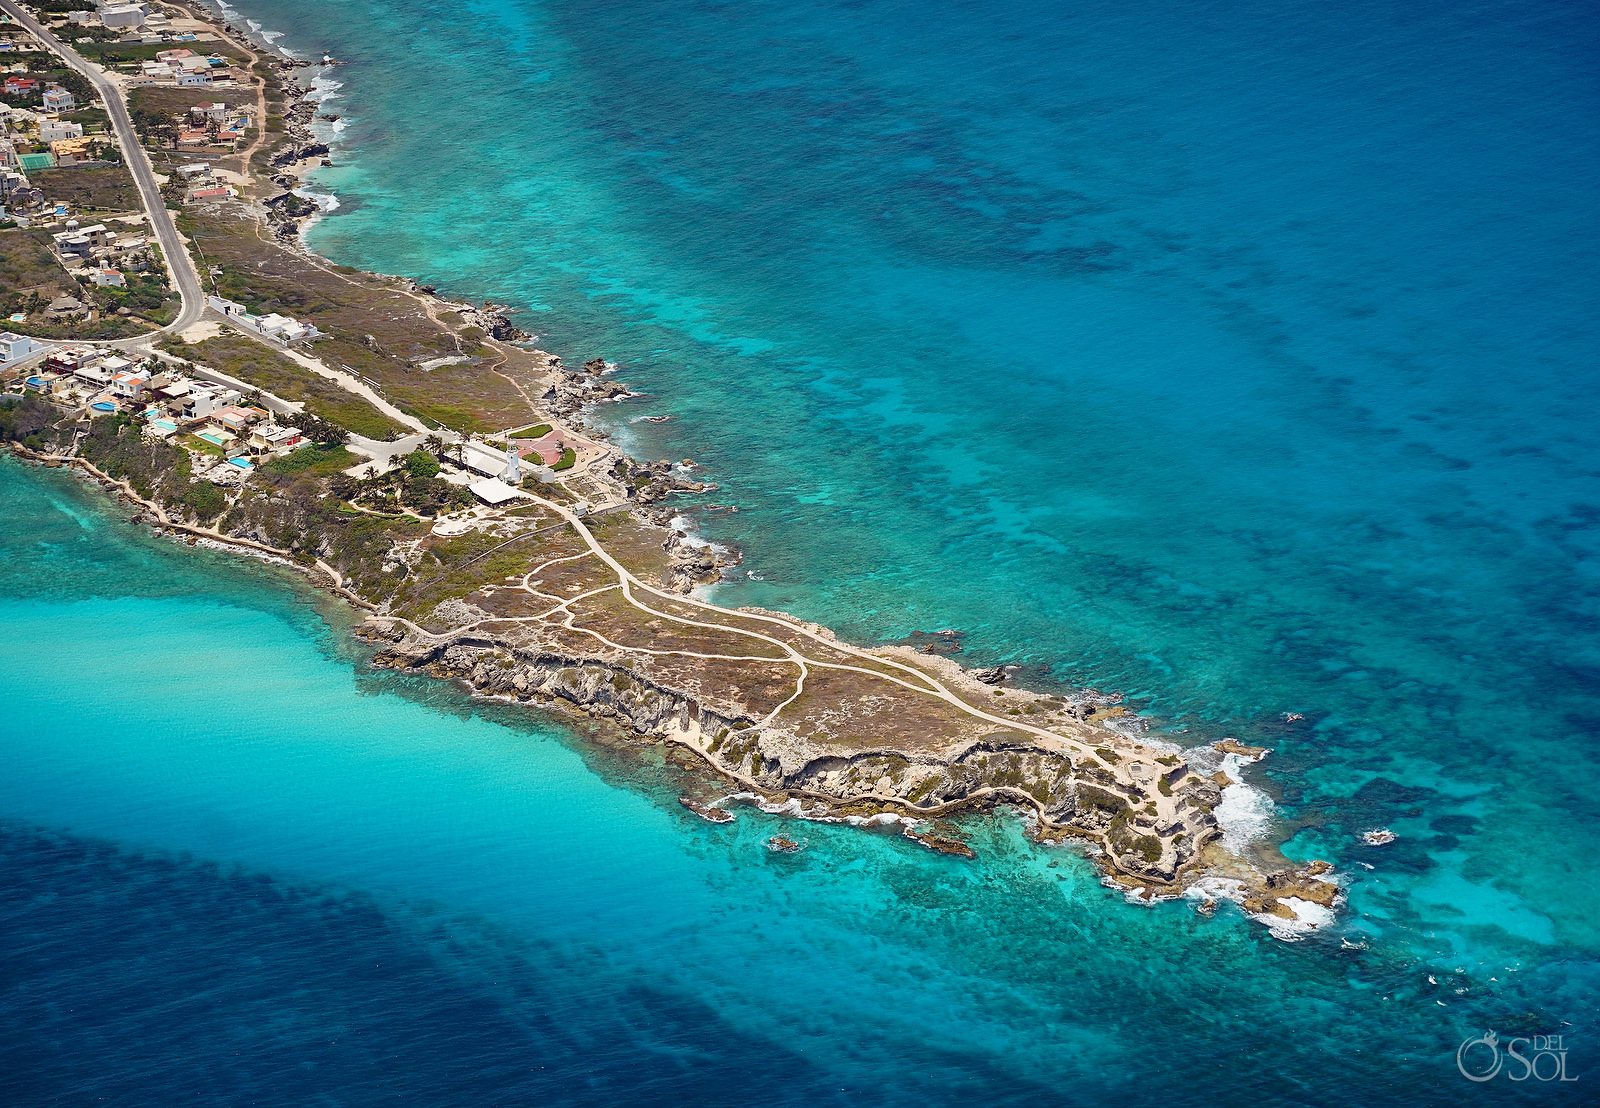 Aerial Photography of Punt Sur Isla Mujeres during 2020 quarantine